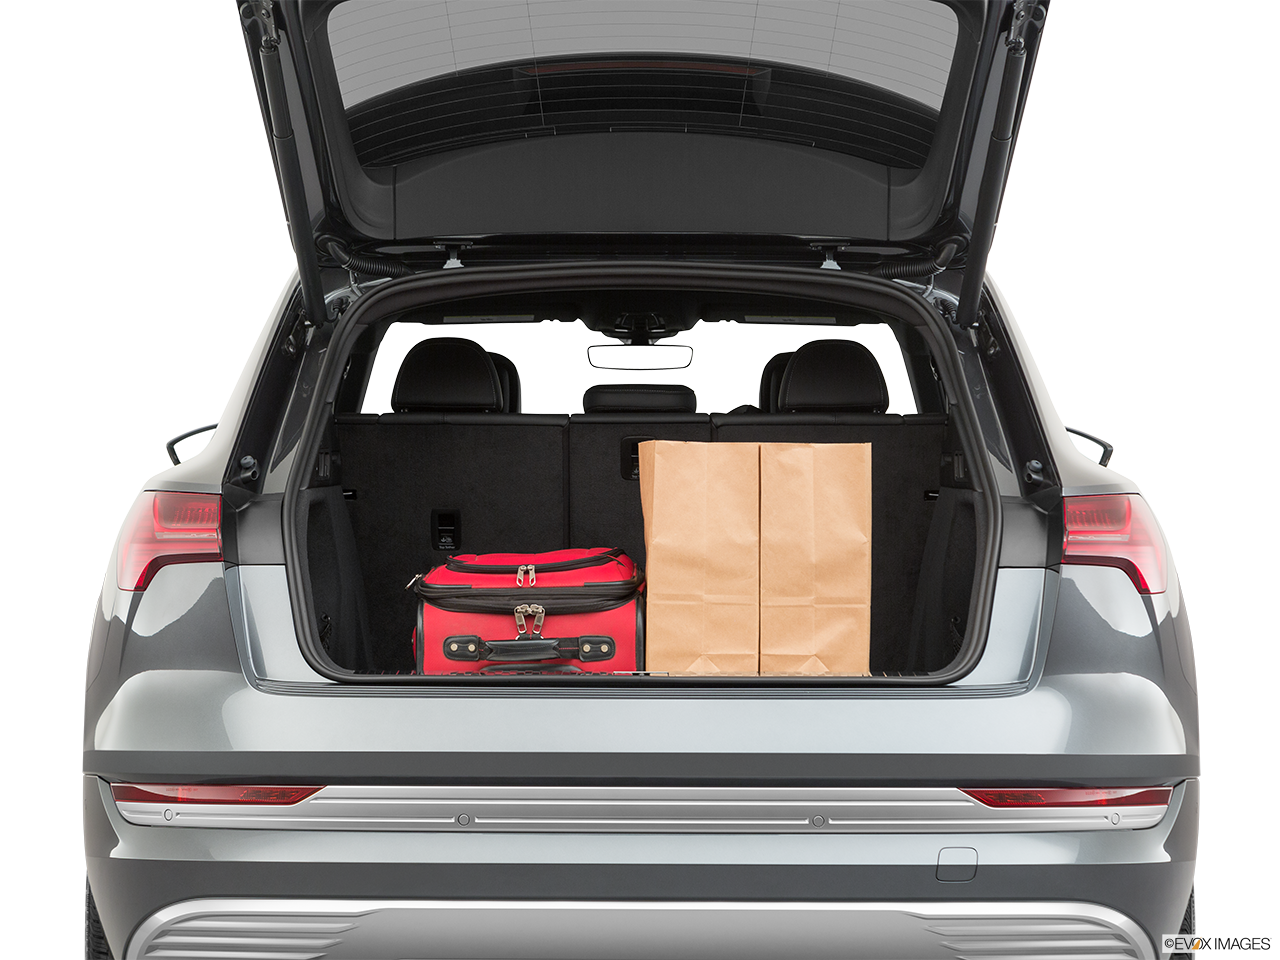 Trunk view of the Audi e-tron